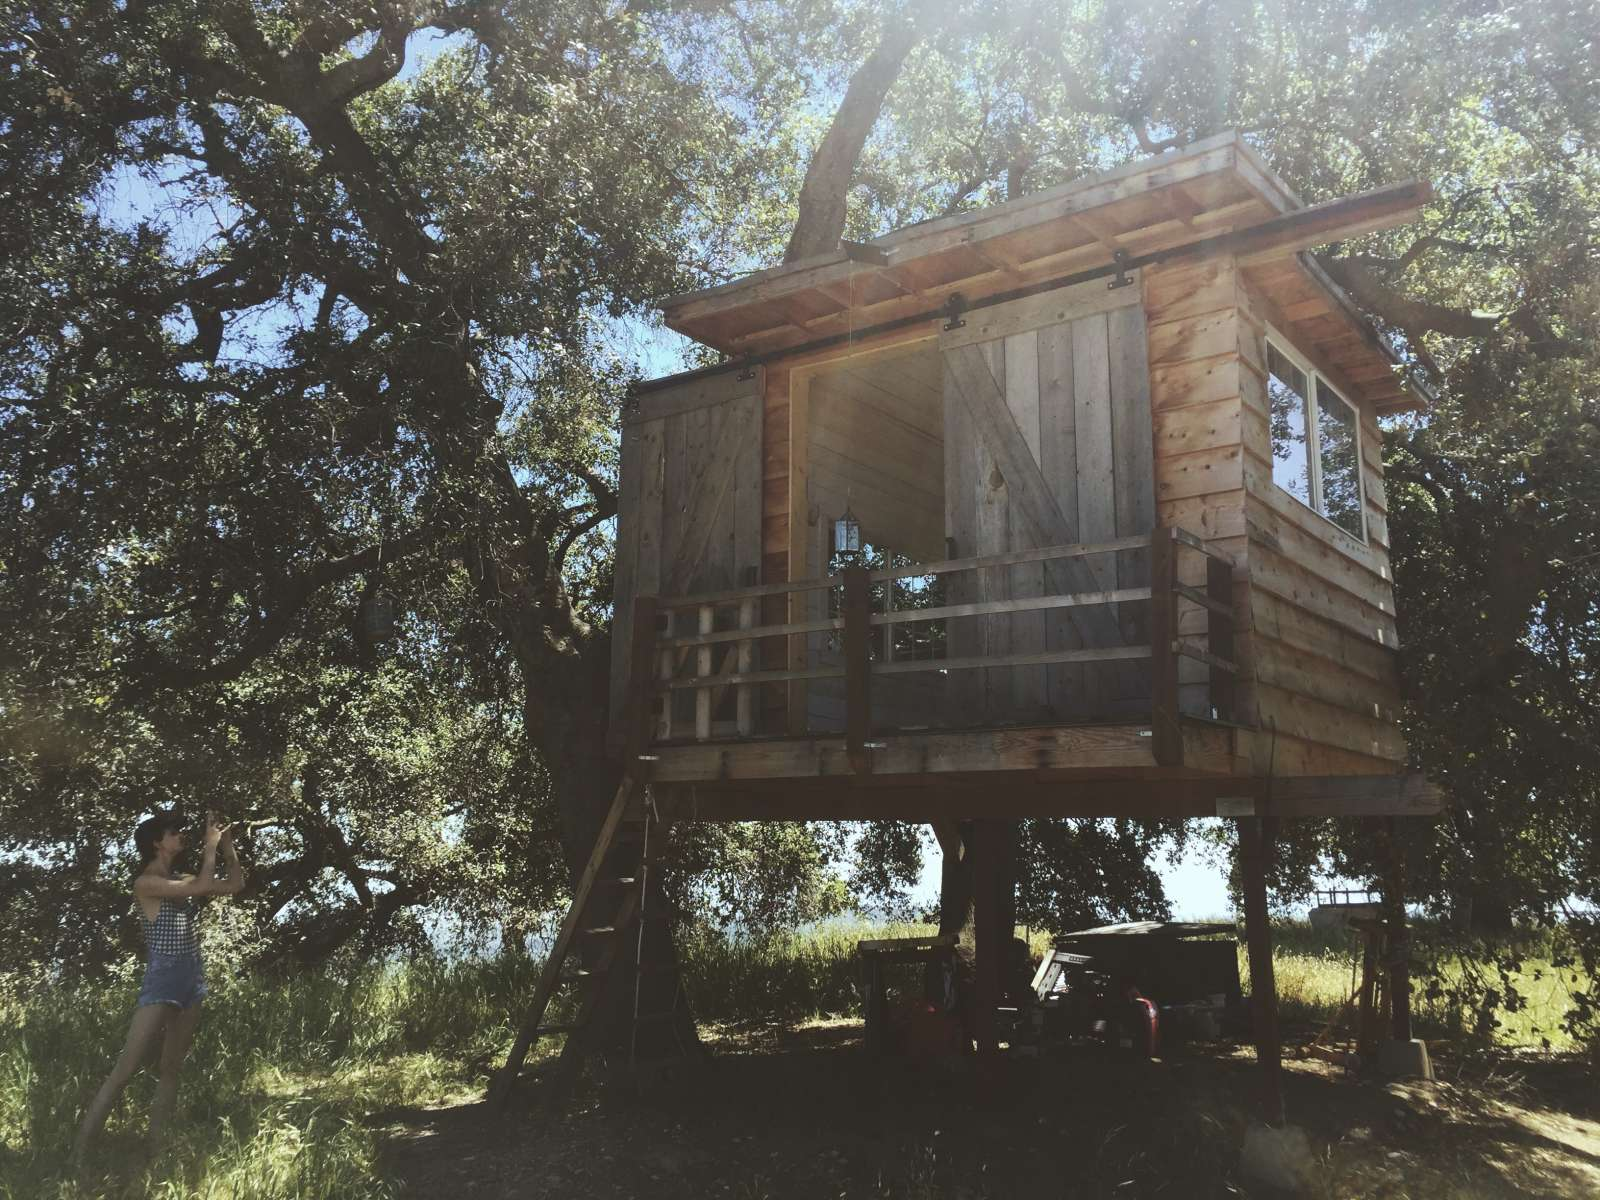 Treehouse Pictures Ojai Mountaintop Treehouse Ojai Mountaintop Treehouse Ca 42